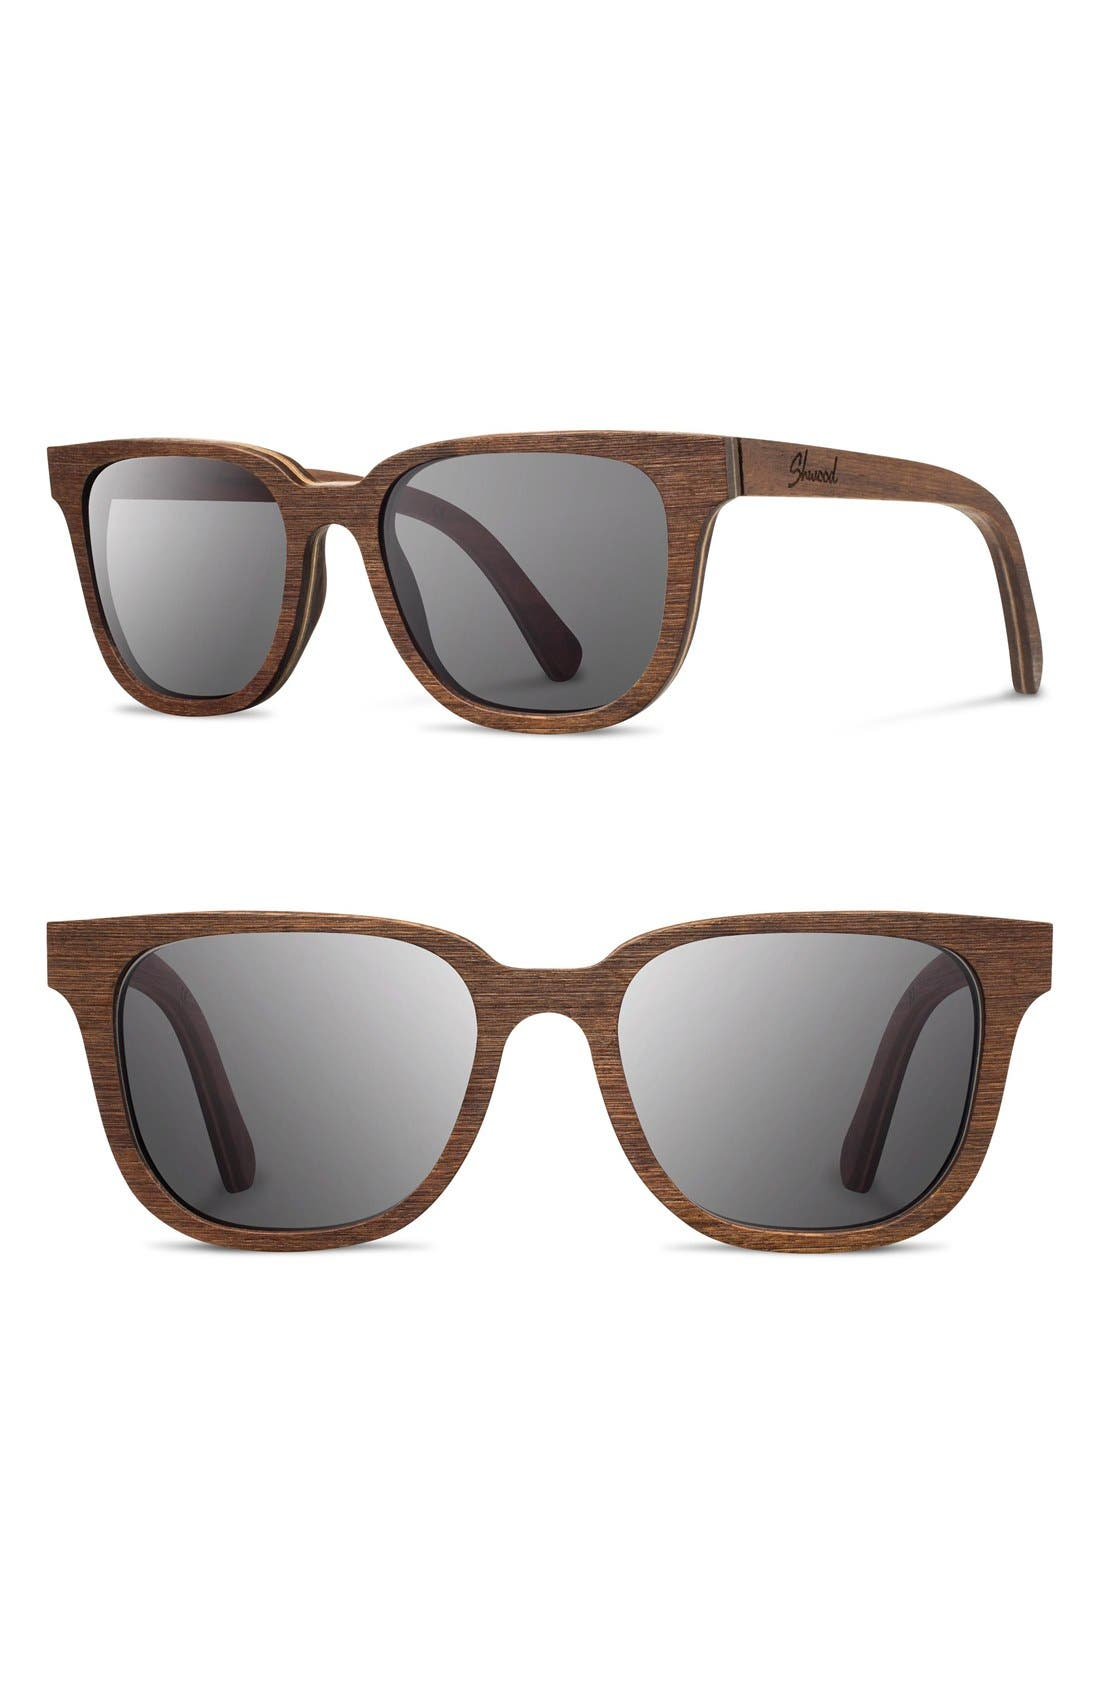 Alternate Image 1 Selected - Shwood 'Prescott' 52mm Wood Sunglasses